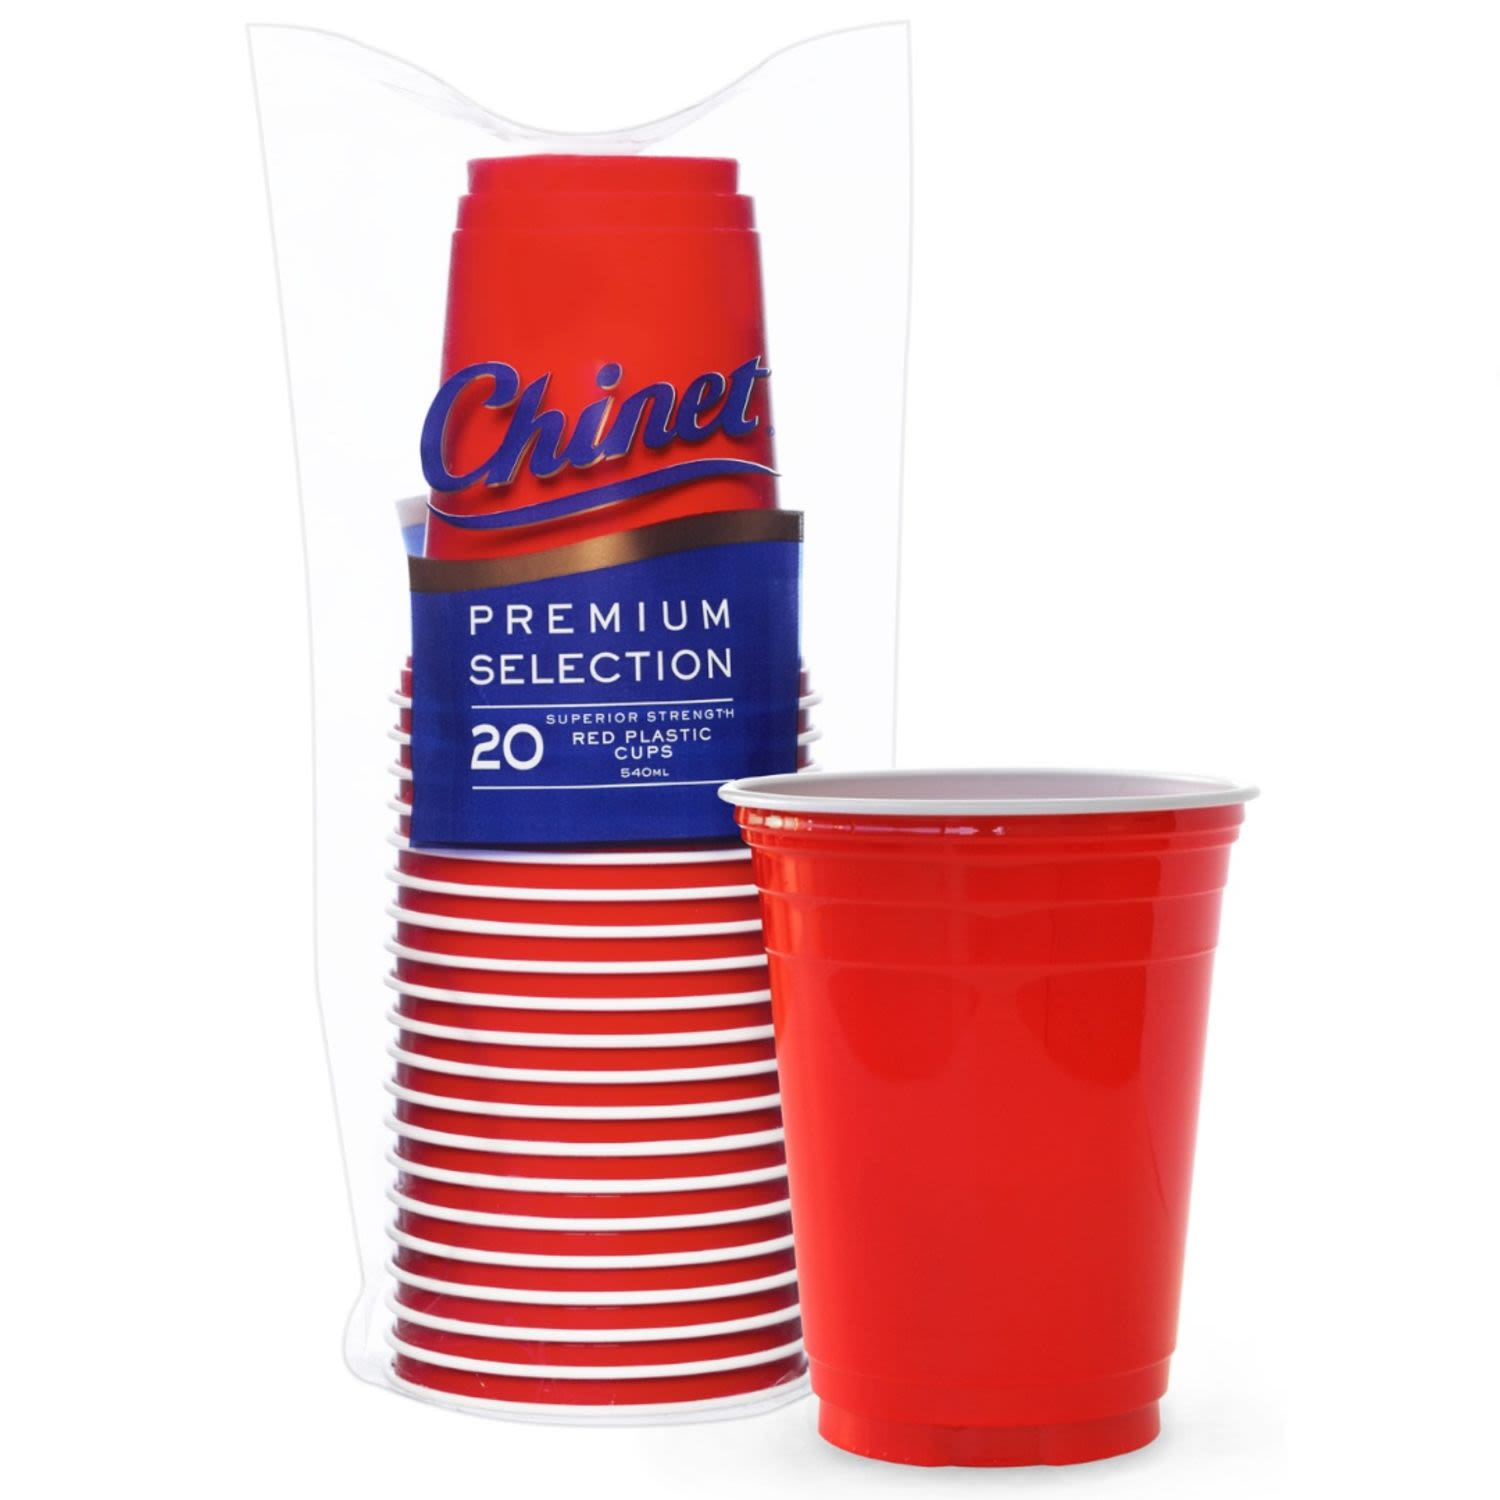 Chinet Bioware Red Plastic Cup 540ml, 20 Each